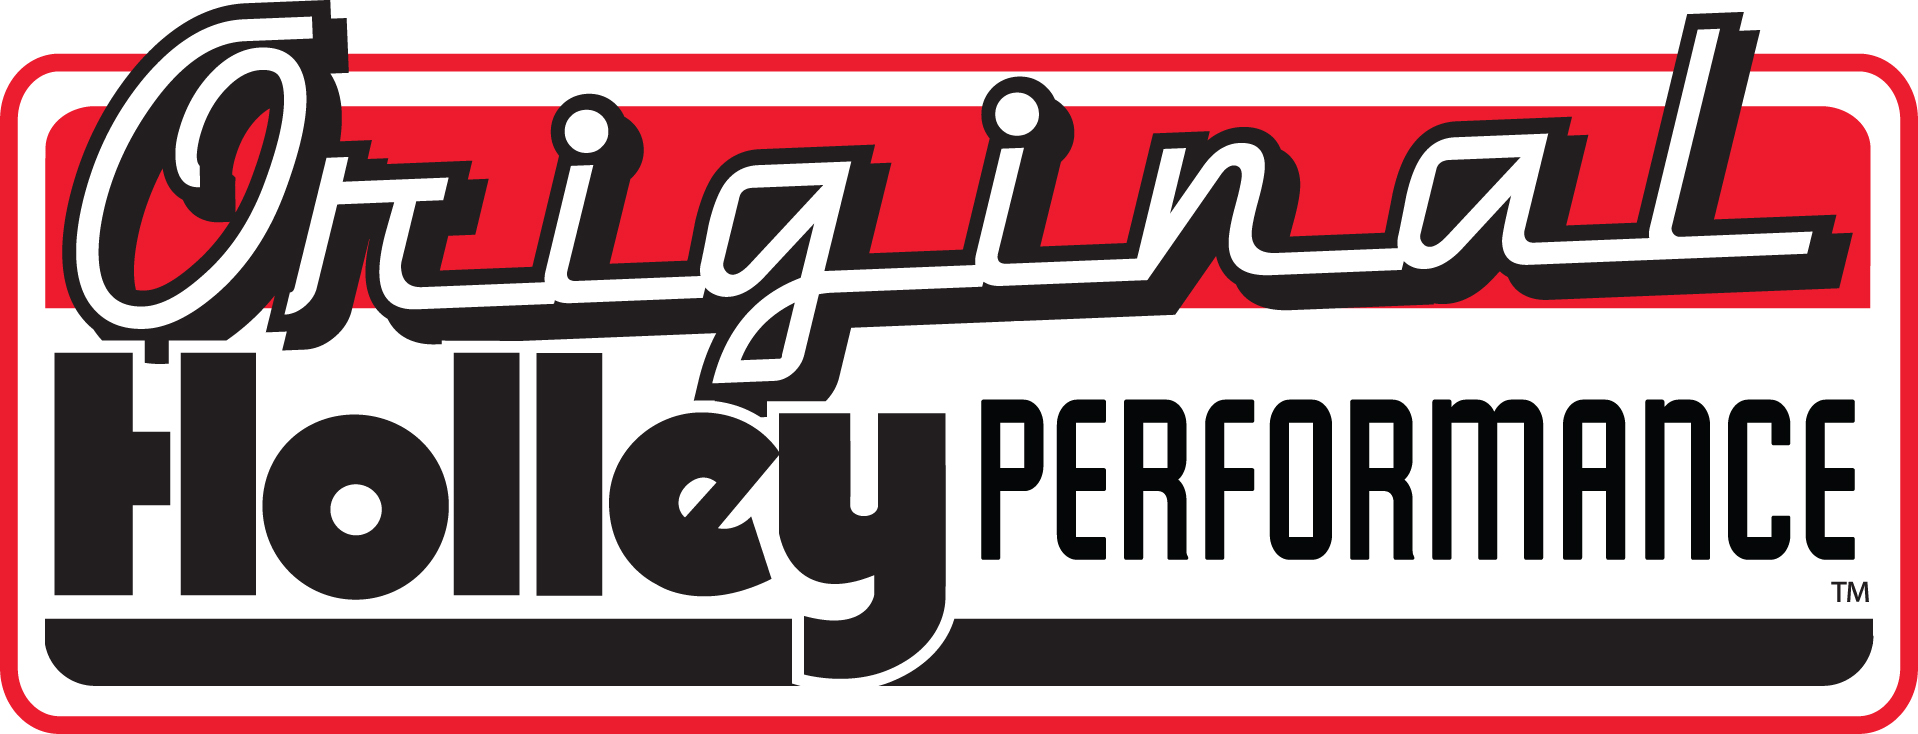 Holley - Original Holley Performance logo